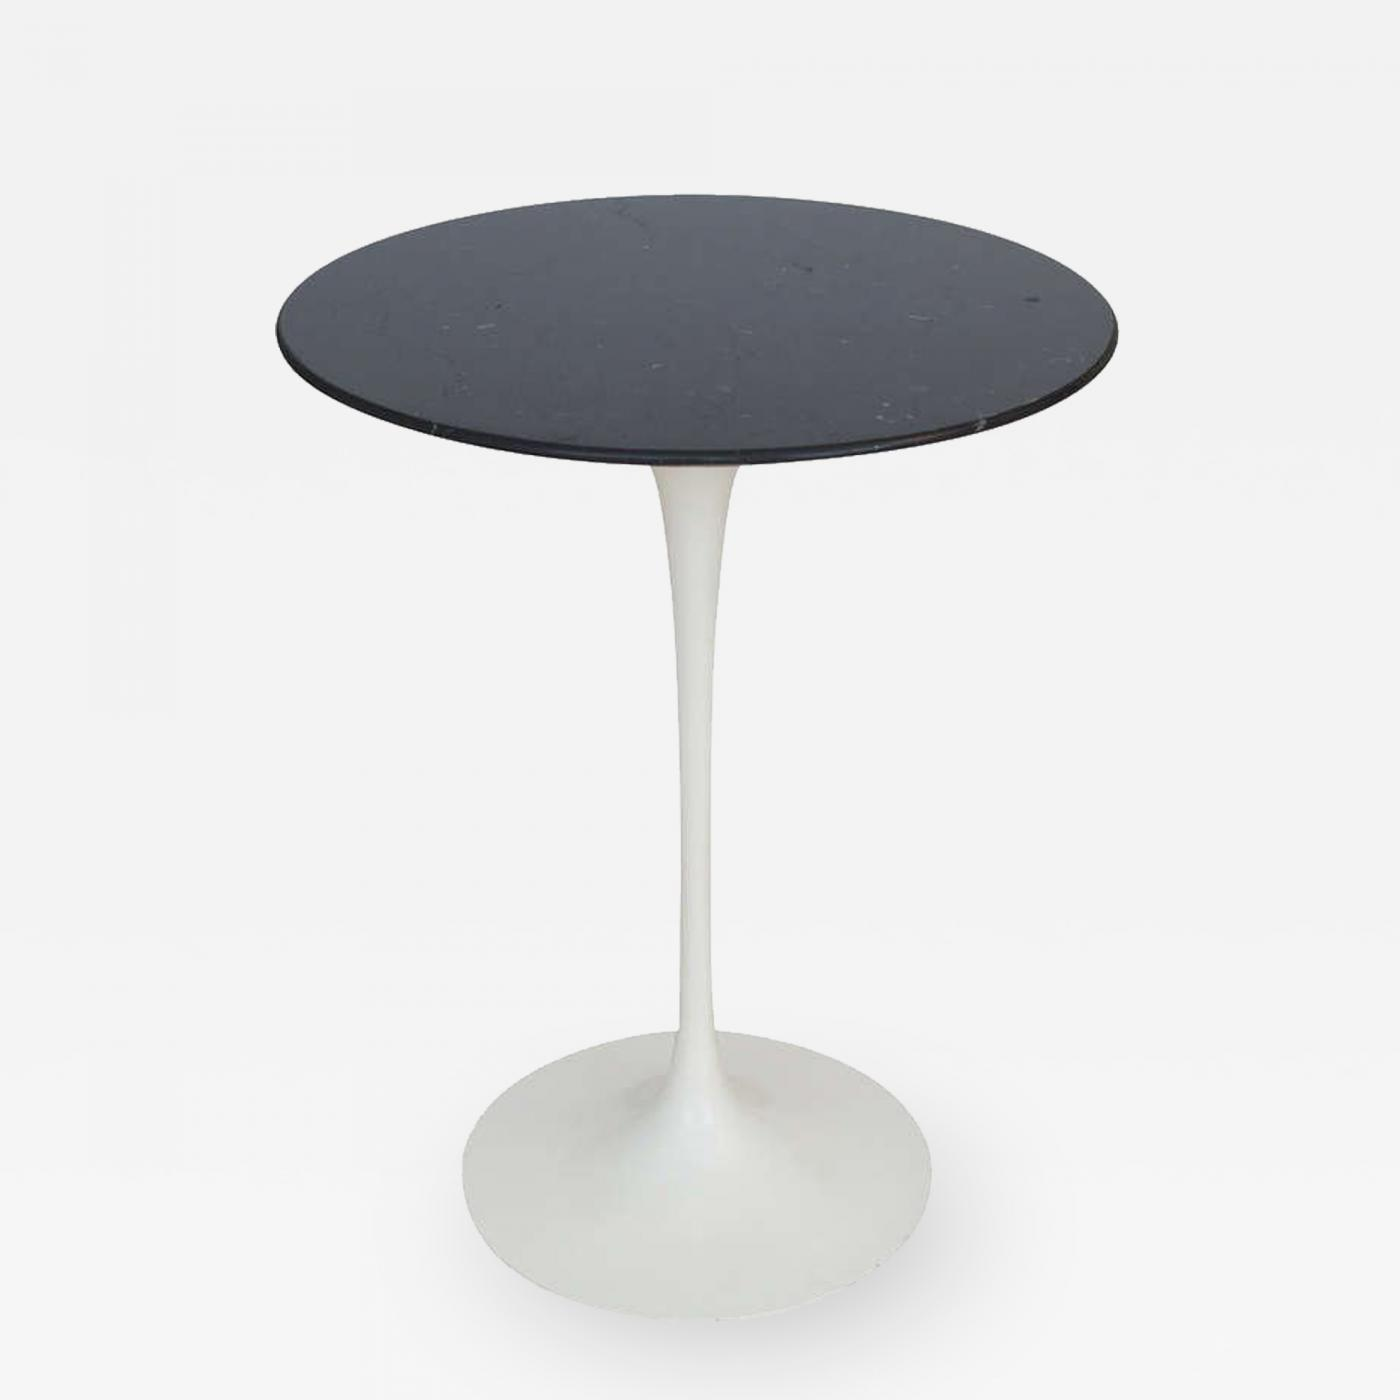 Eero Saarinen Eero Saarinen Knoll Side Table Black Carrara Marble - Saarinen carrara marble table